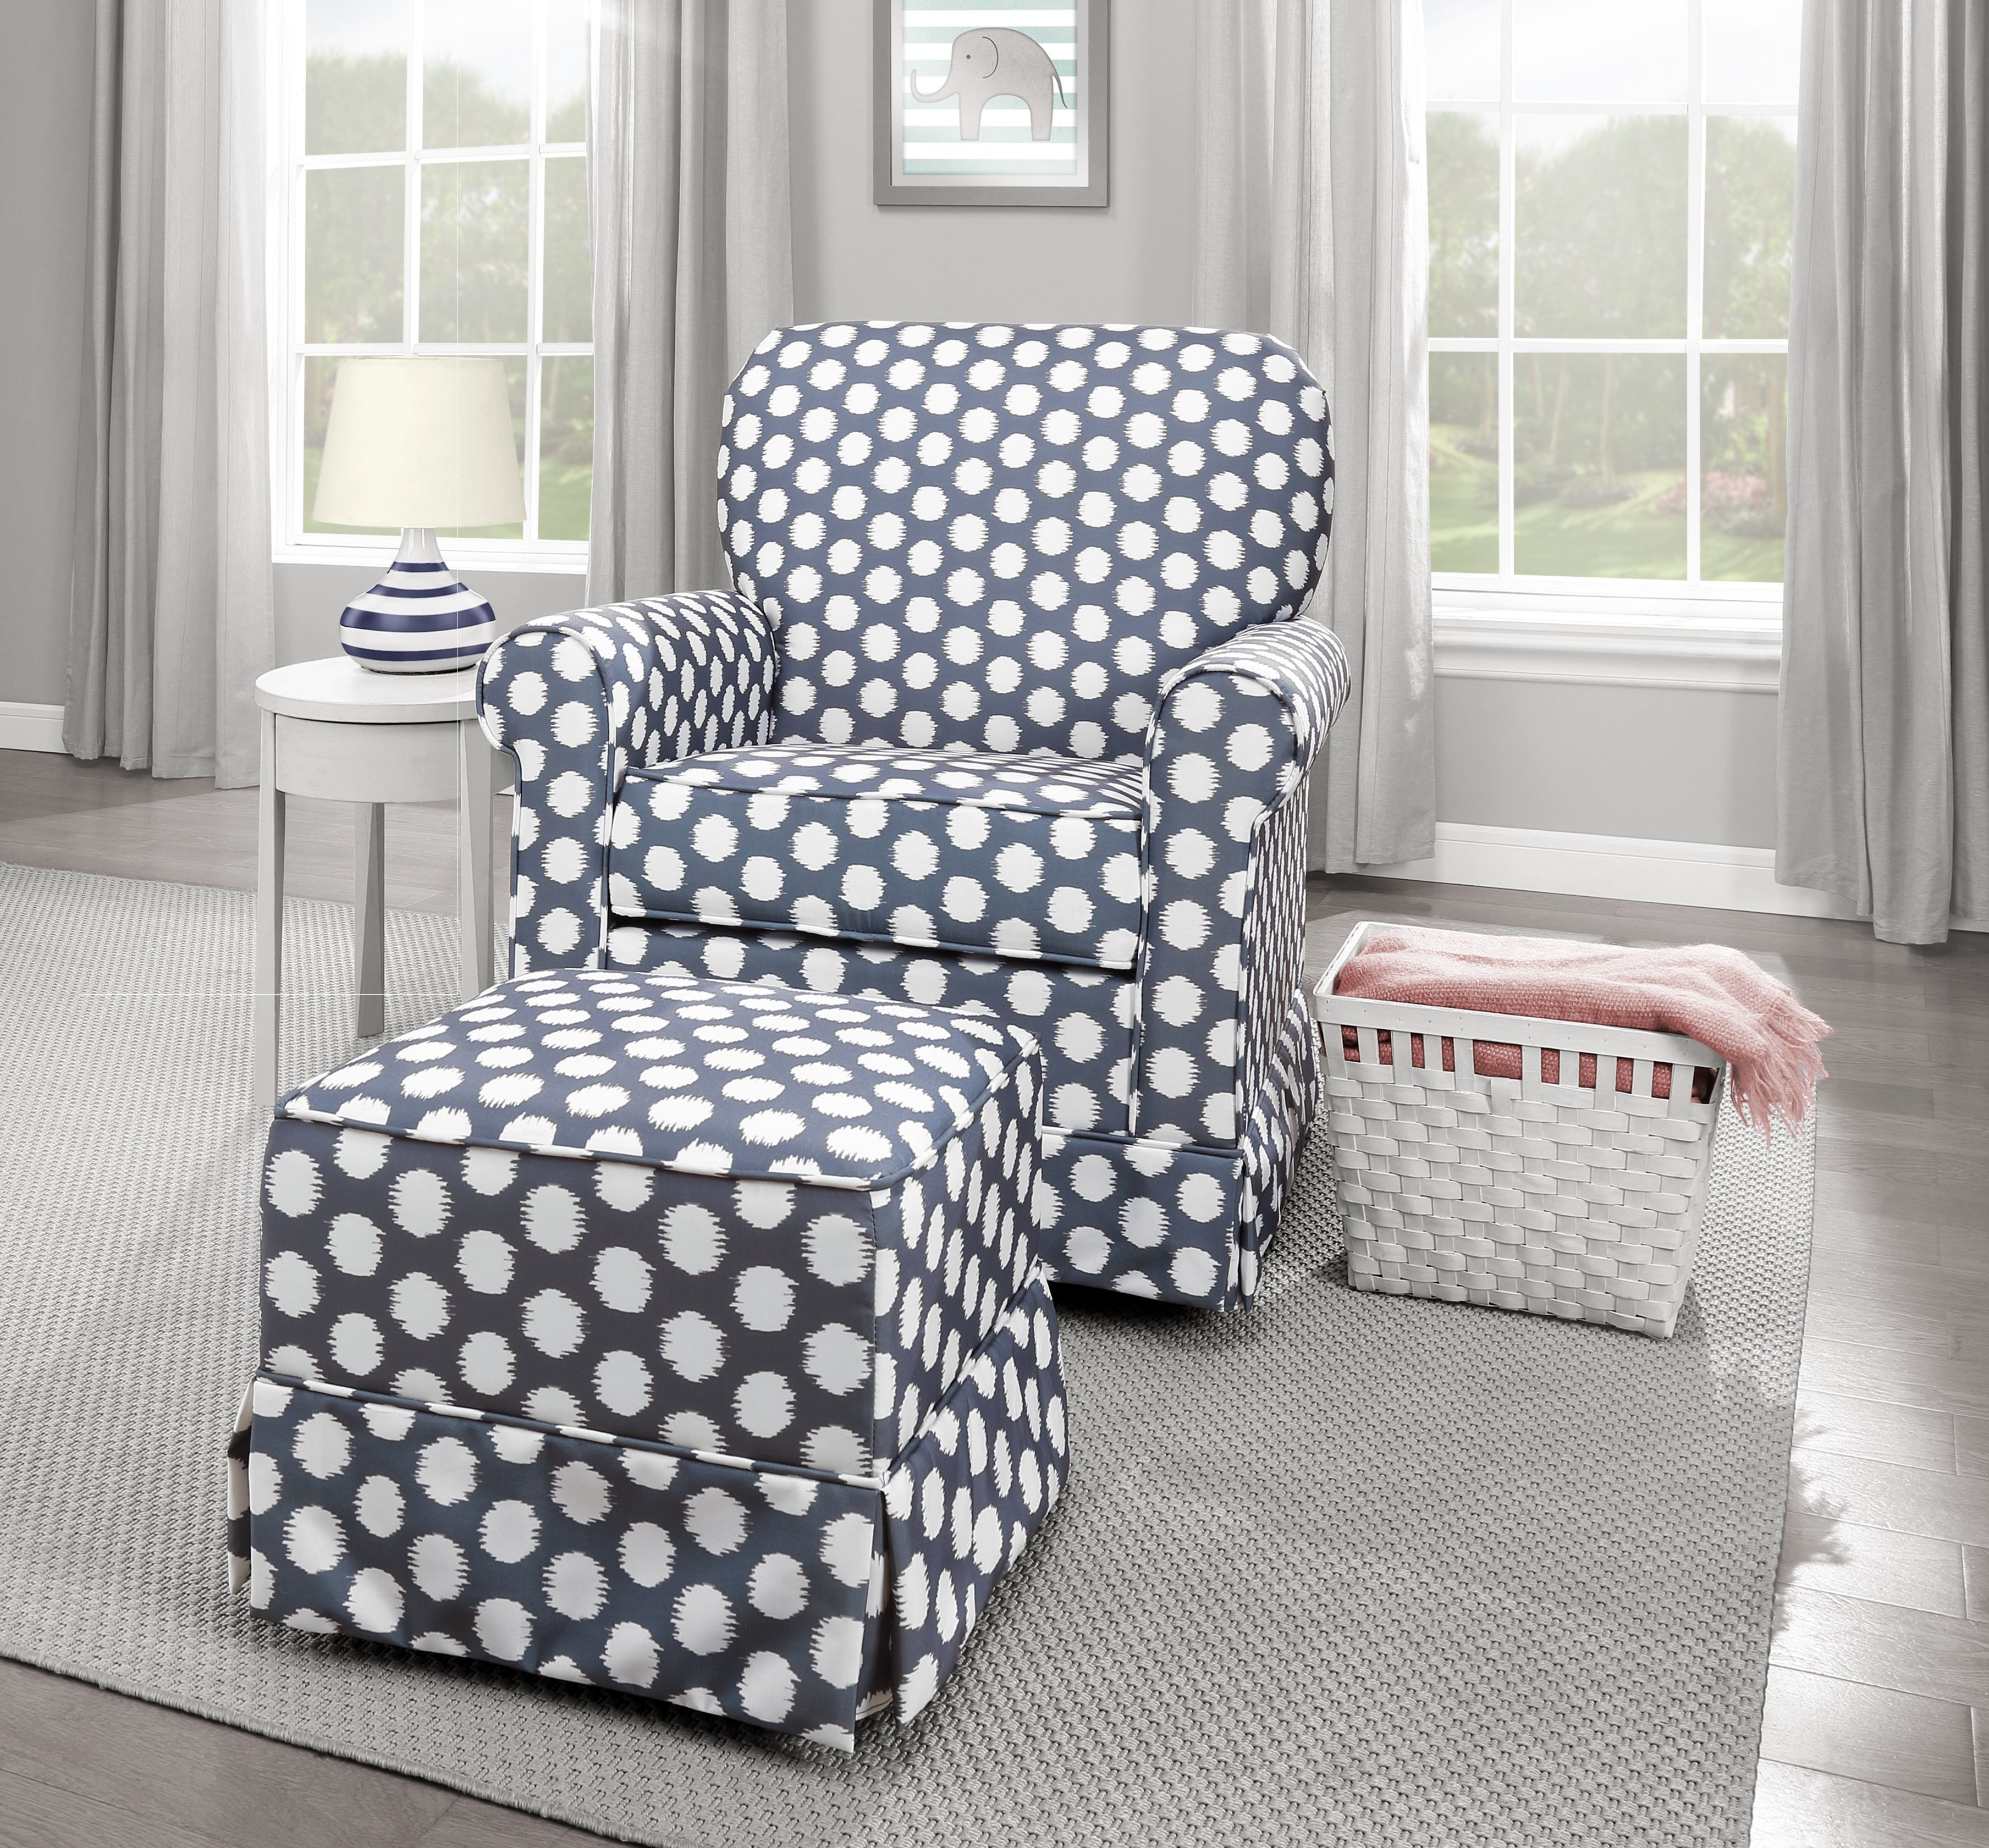 Enhance your nursery with the #Storkcraft Polka Dot Upholstered Swivel Glider and matching Ottoman #rest #relax #glide #lifestyle #gray